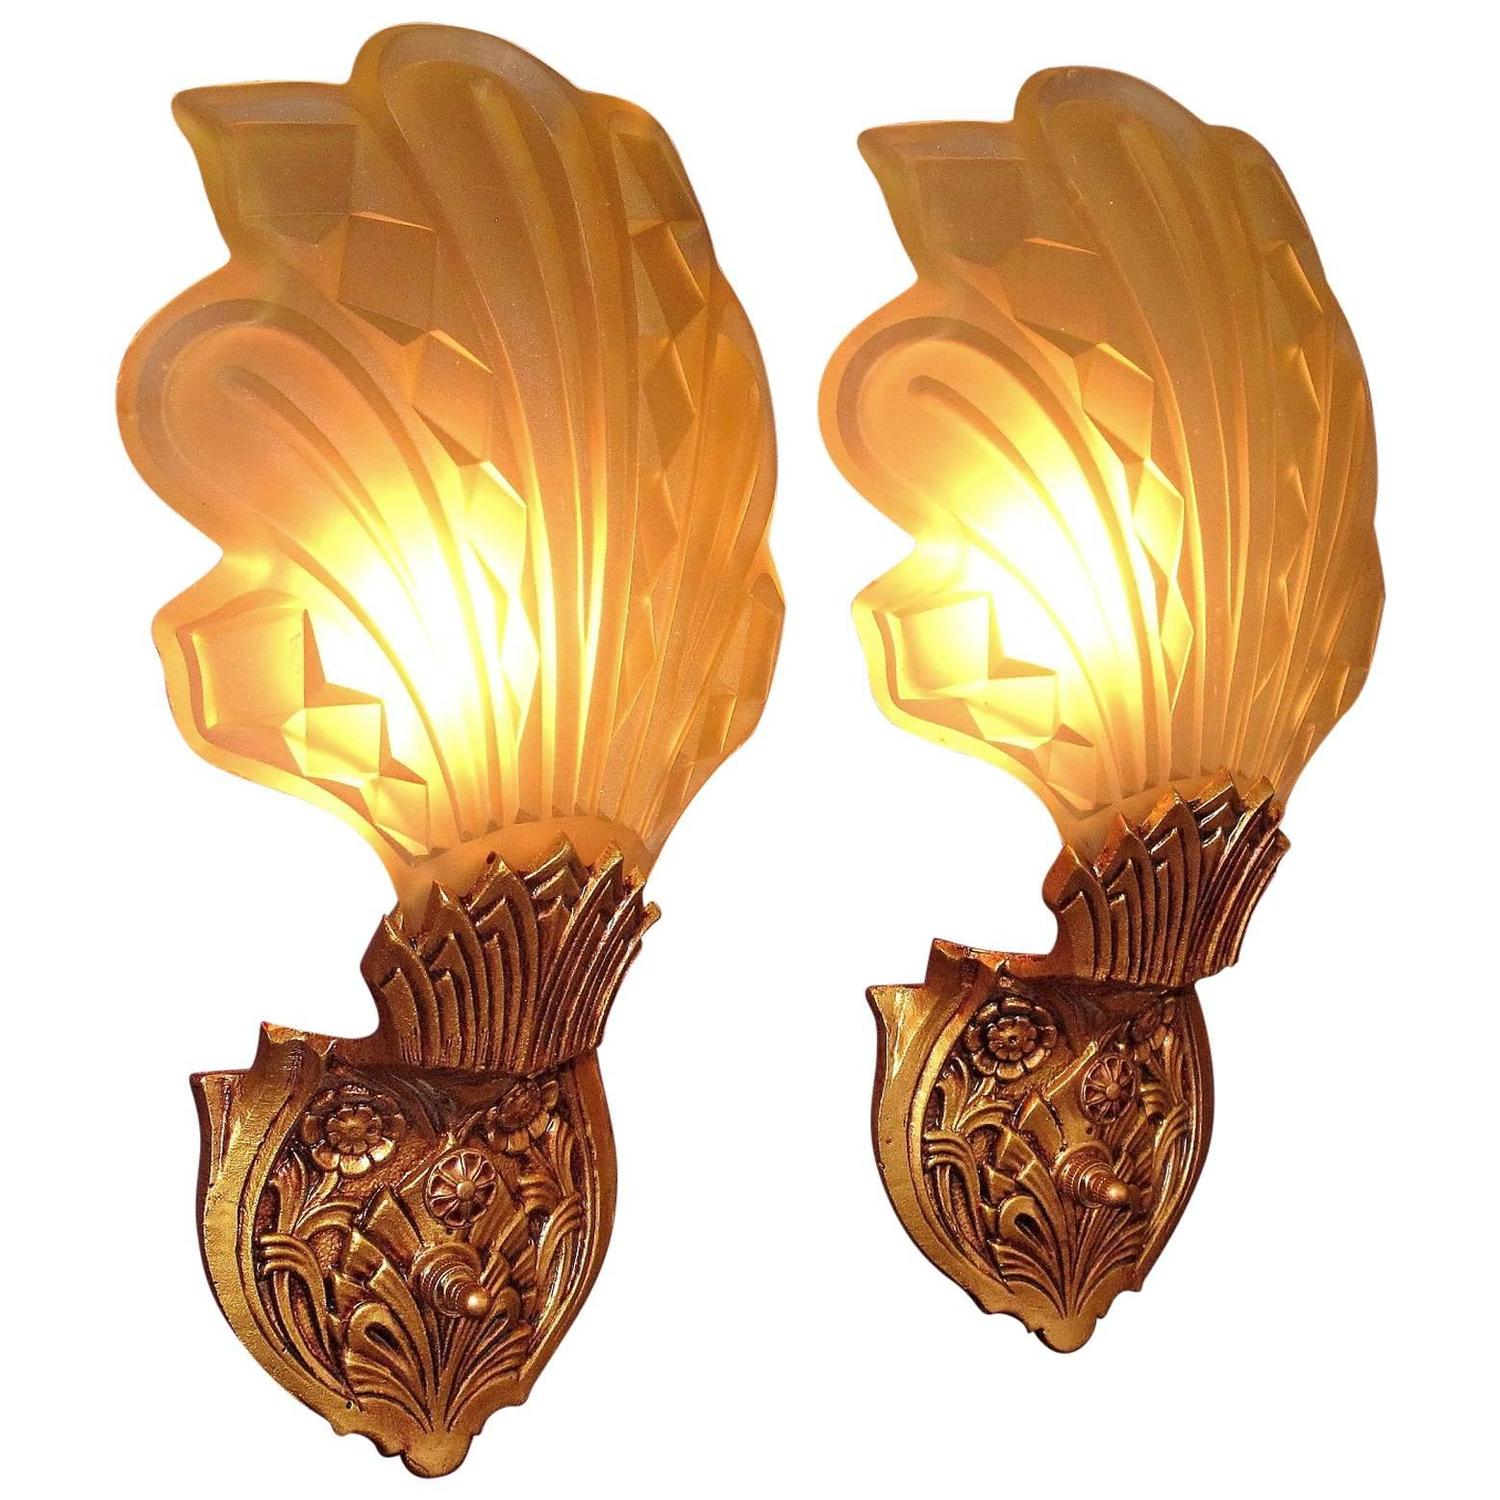 late 1920s early 1930s art deco wall sconces for sale at 1stdibs